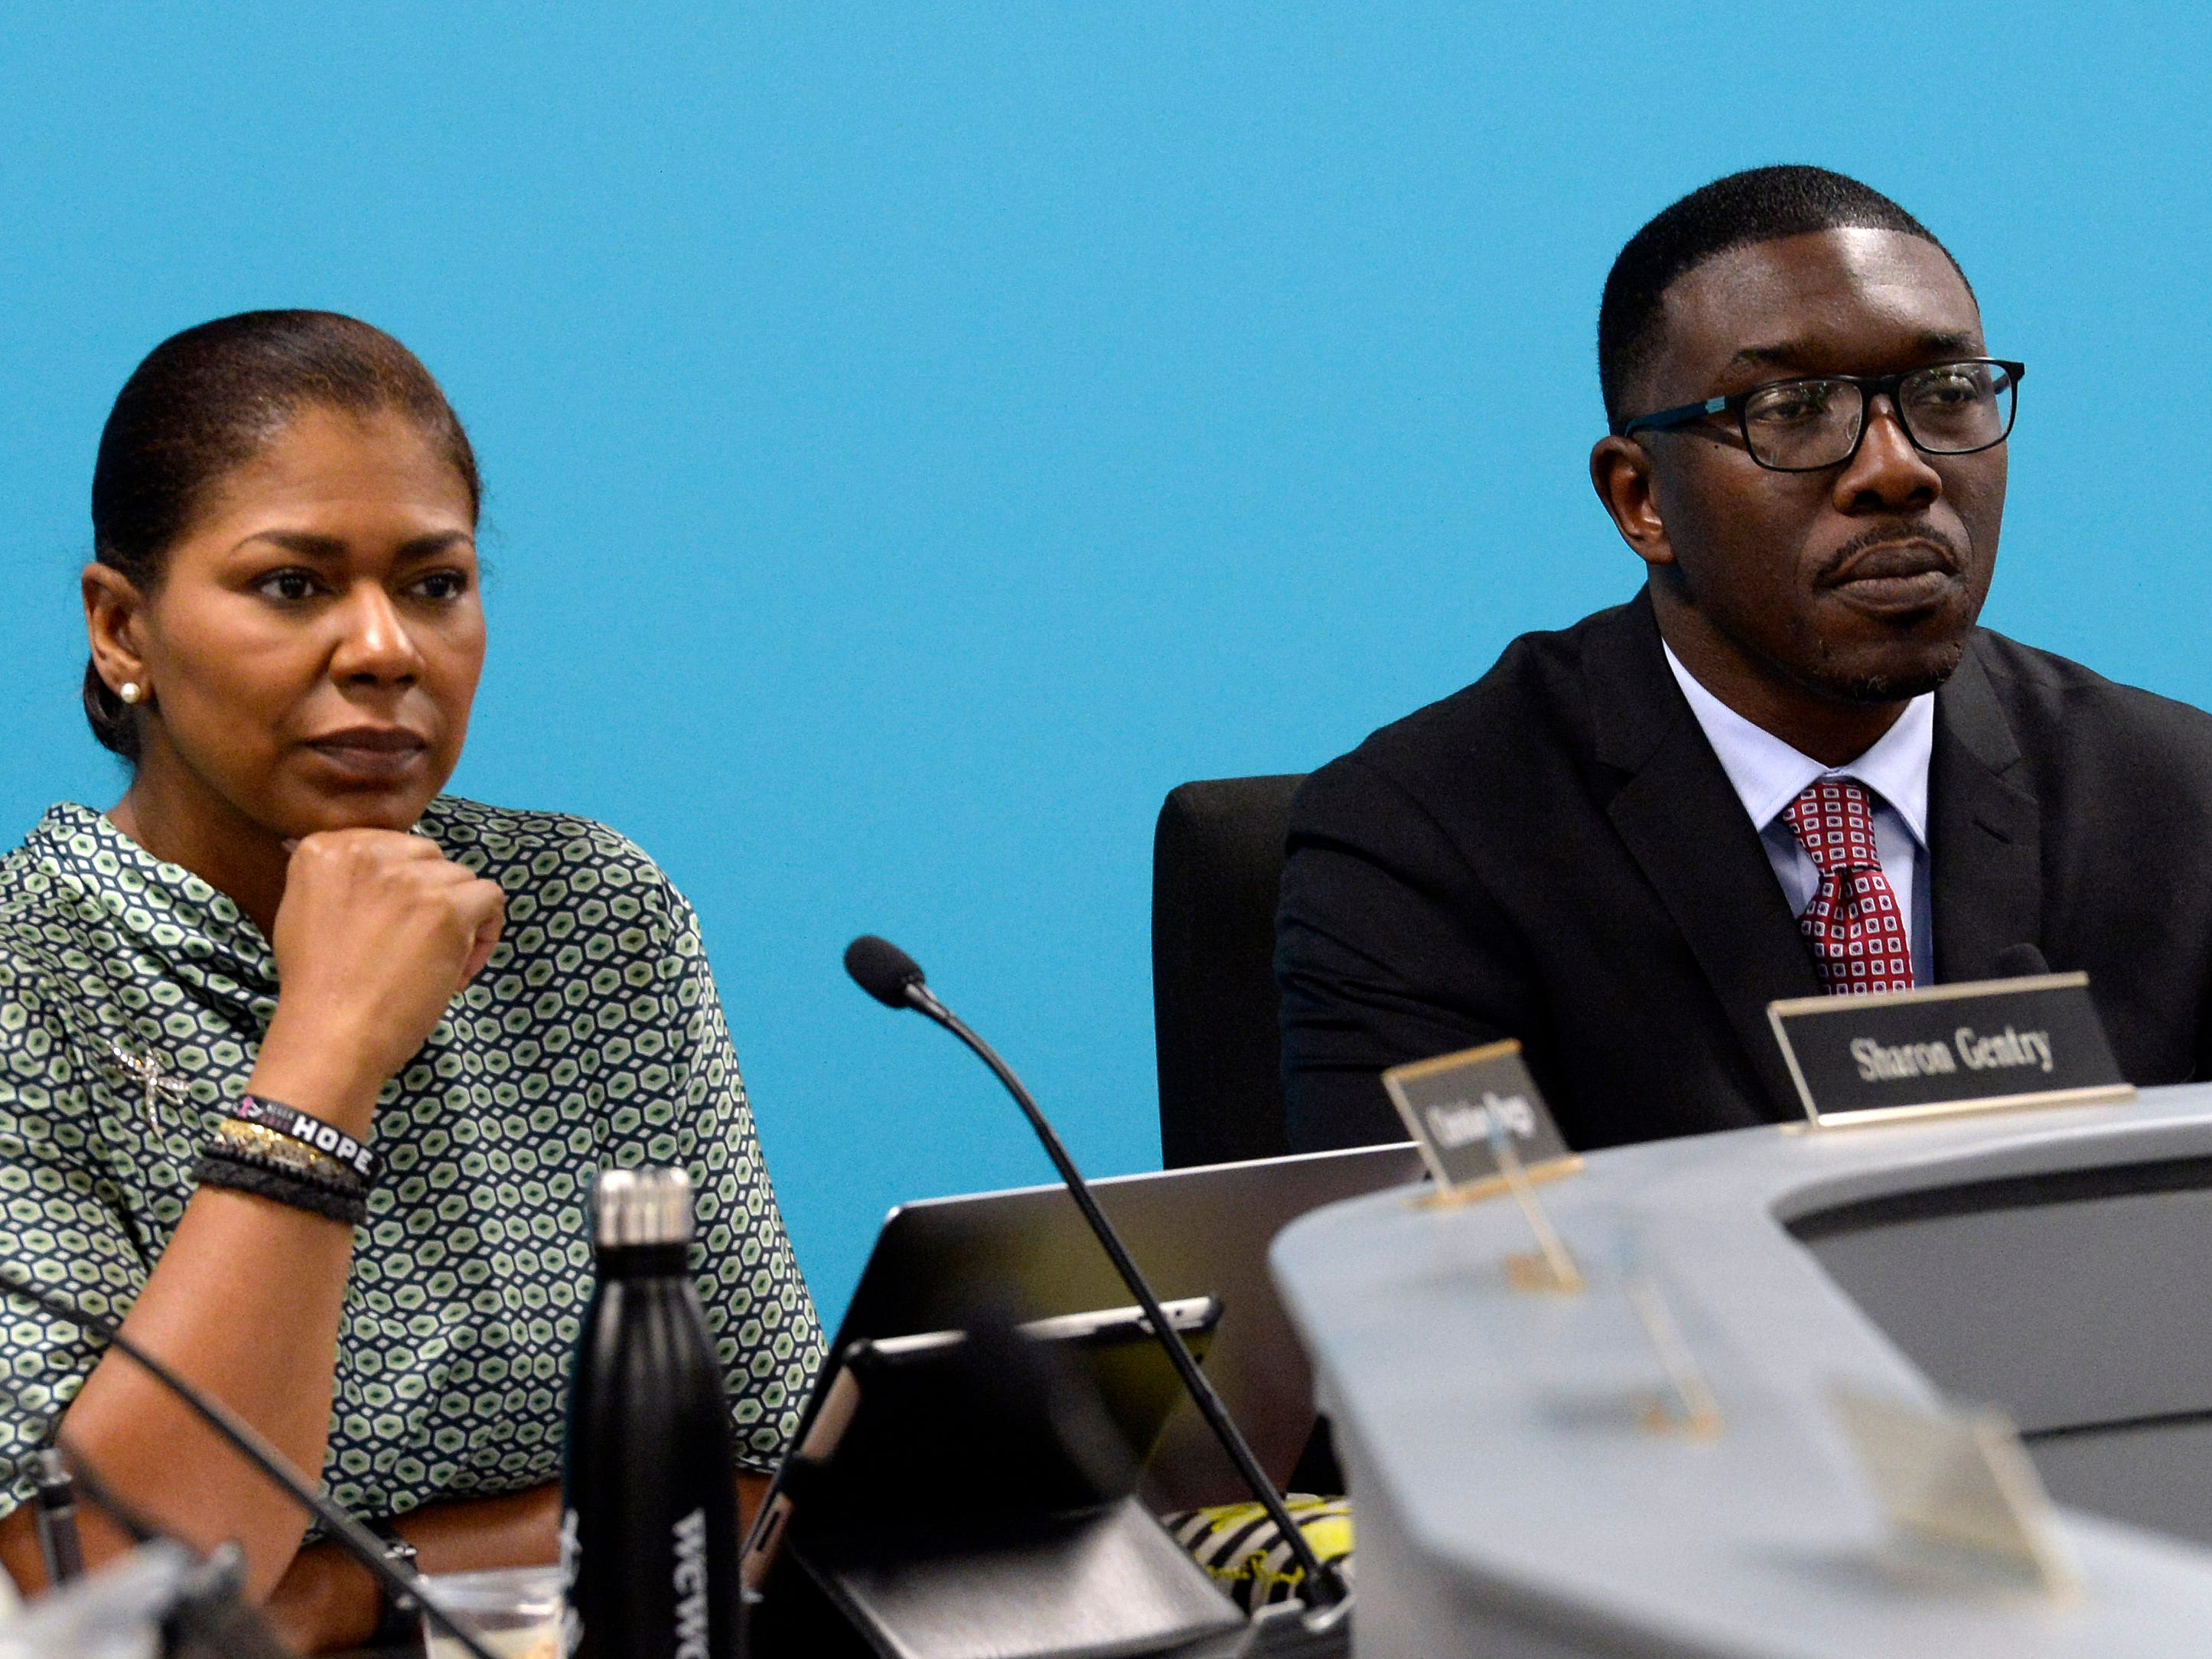 Metropolitan Nashville Public Board of Education board members Sharon Gentry and Nashville Director of Schools Shawn Joseph listen to people speak during a board meeting on Tuesday, Jan. 8, 2019, in Nashville, Tenn. Anger and frustration was shown at the December school board meeting as the district struggles to find $13 million to balance its budget. Some school board members have said they do not trust or have confidence in Shawn Joseph.